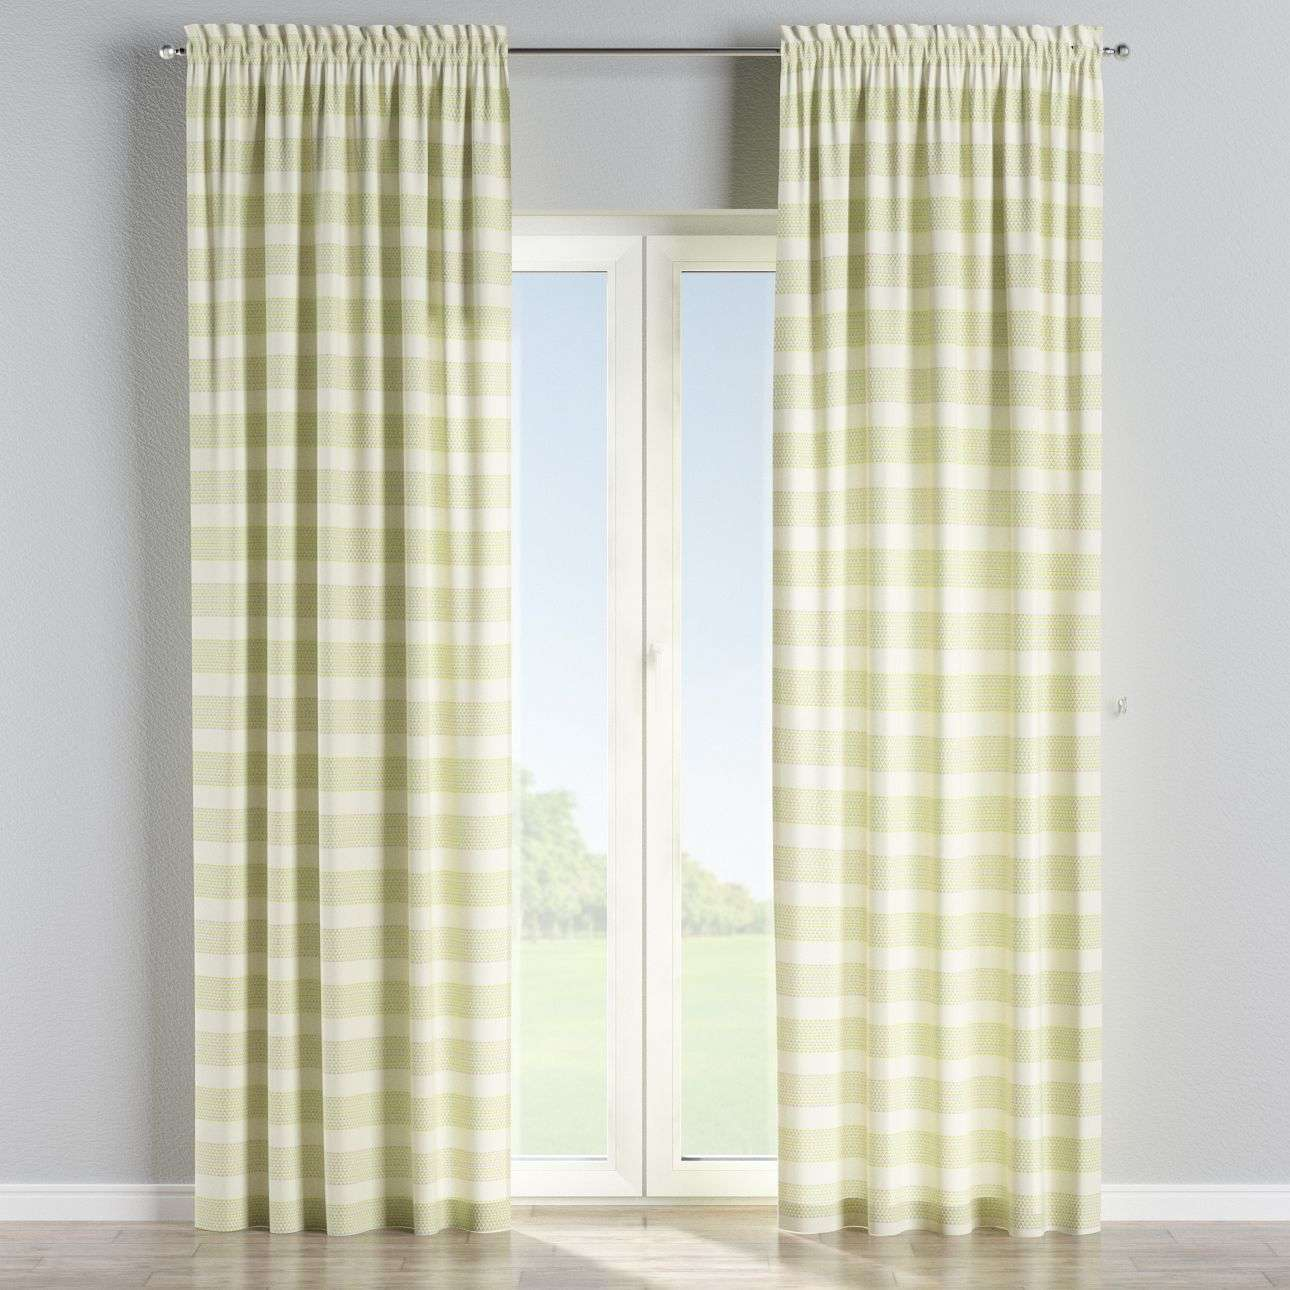 Slot and frill curtains in collection Rustica, fabric: 140-35